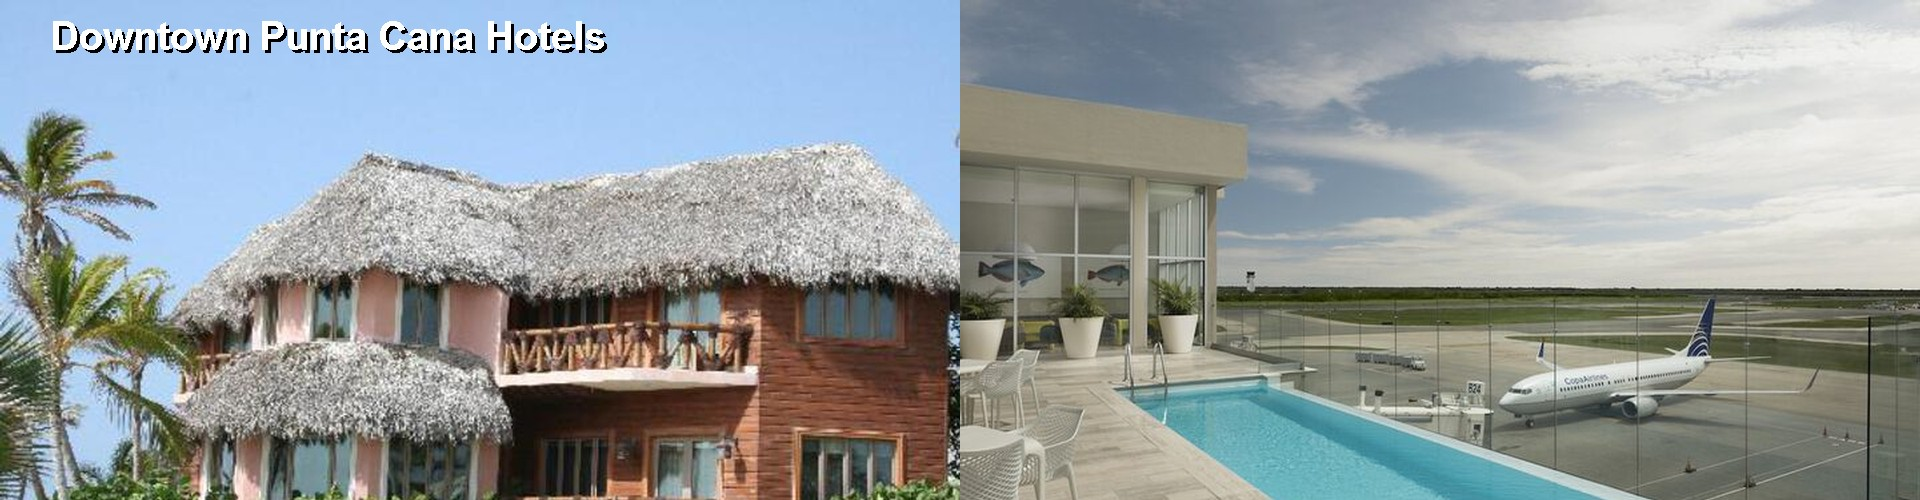 Simple Best Hotels Near Downtown Punta Cana With Gorda Airport